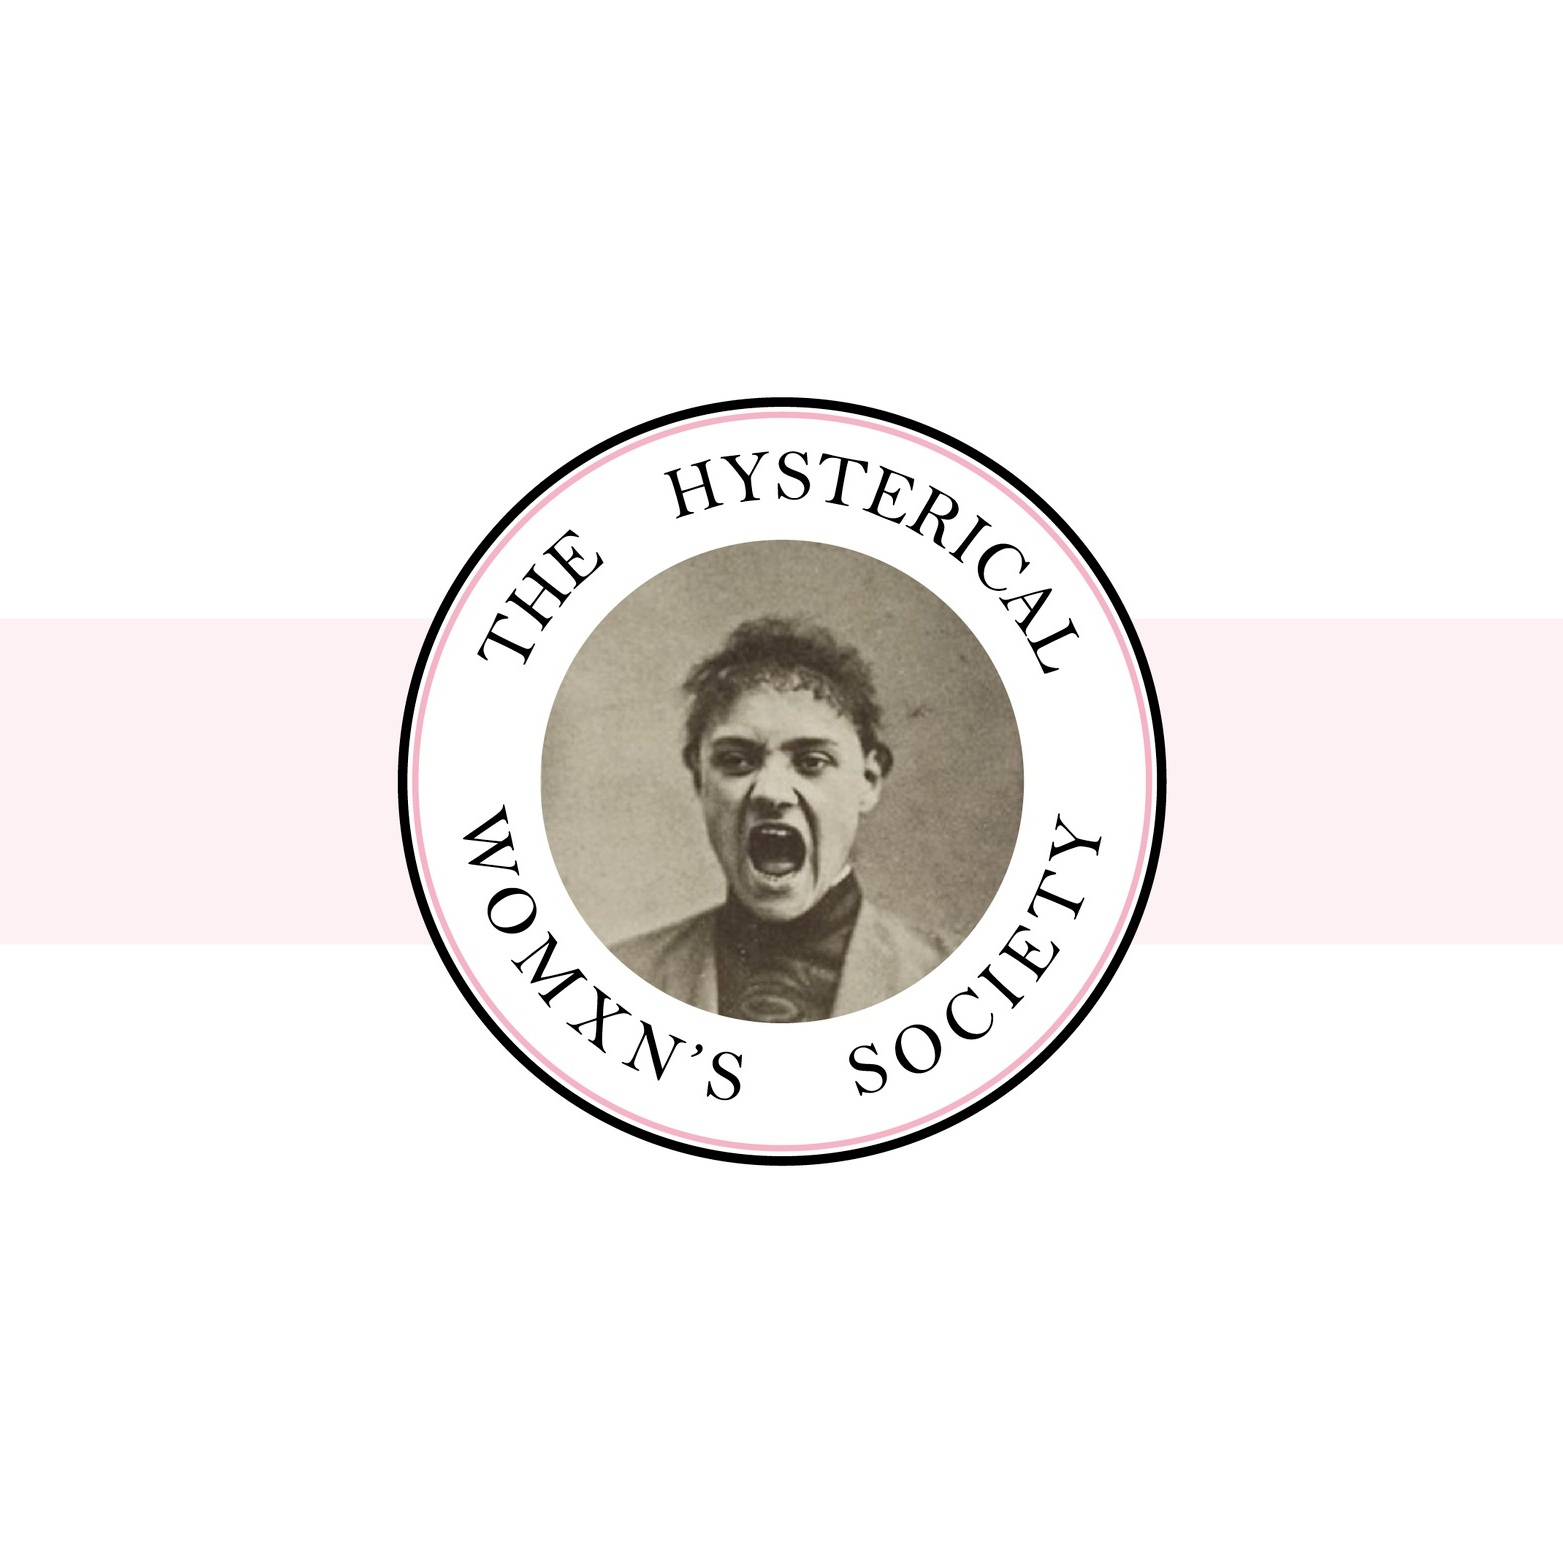 THe Hysterical Womxns society - Logo DesignWebsite DesignMerchandise DesignSocial Media Content CreationProjected Presentation Design